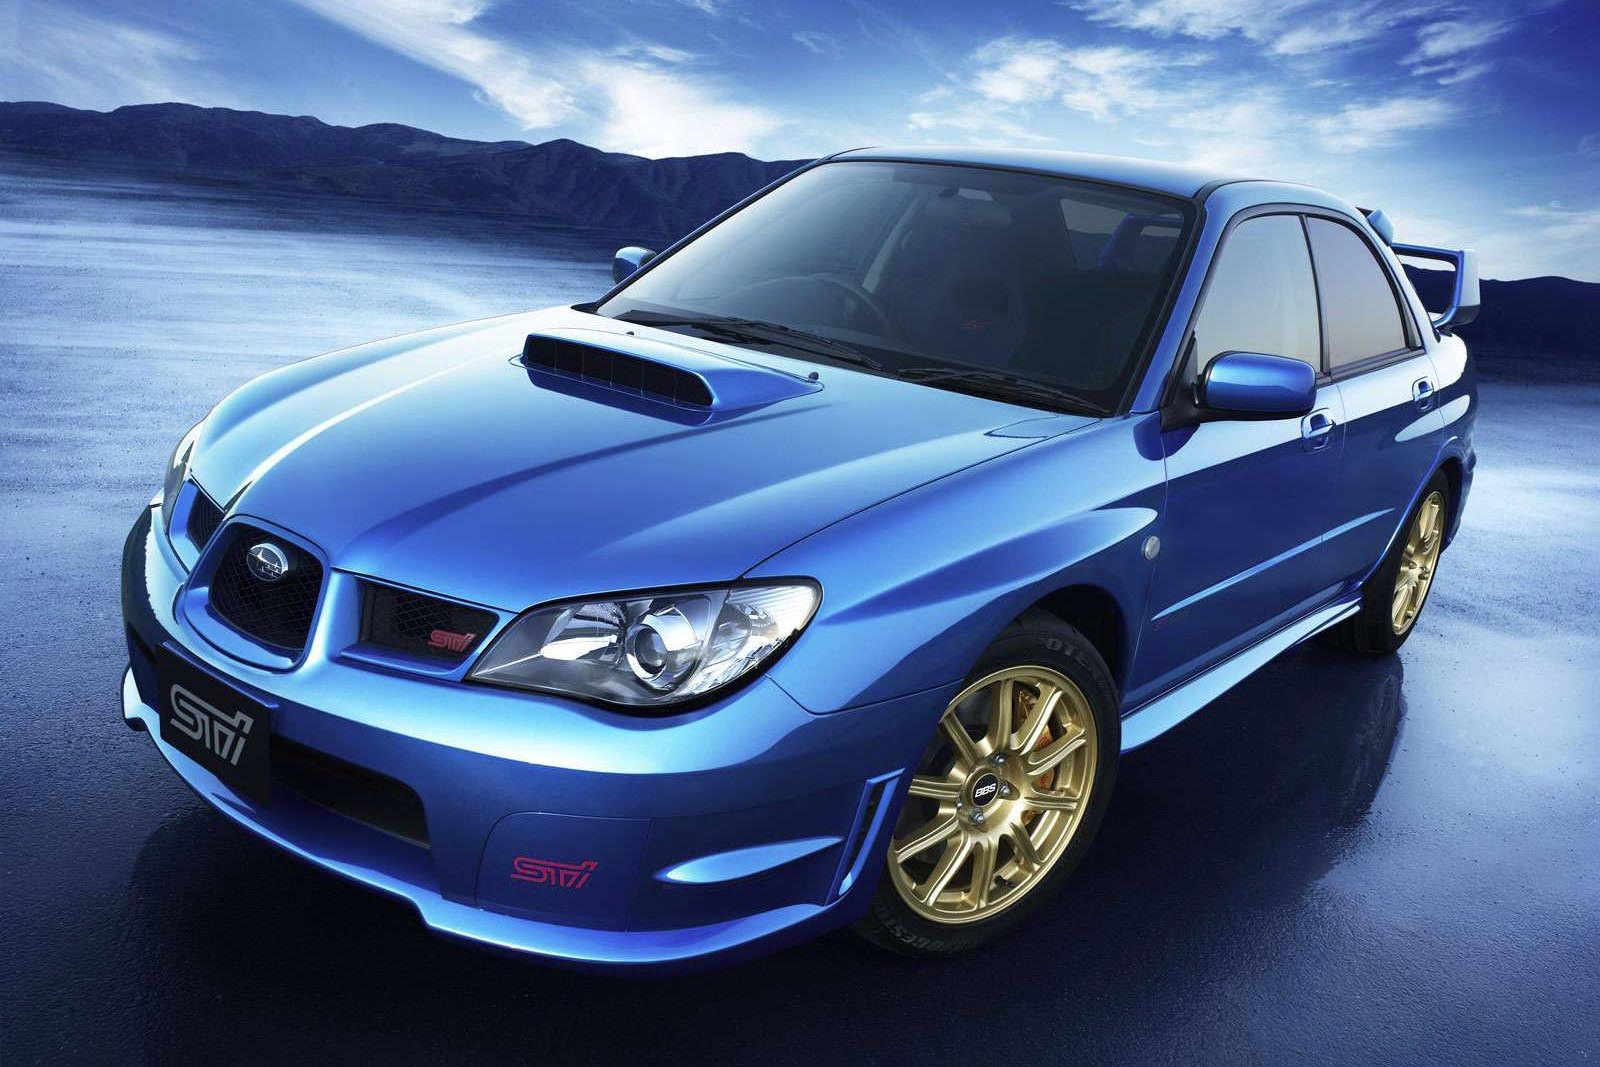 Nothing says practical speed like a Subaru WRX. You've got your all-wheel-drive for poor weather conditions, your four doors for schlepping around the kids, a usefully-sized trunk for cargo duty, and decent visibility. Also, giant wing and hood scoop. Because racecar.